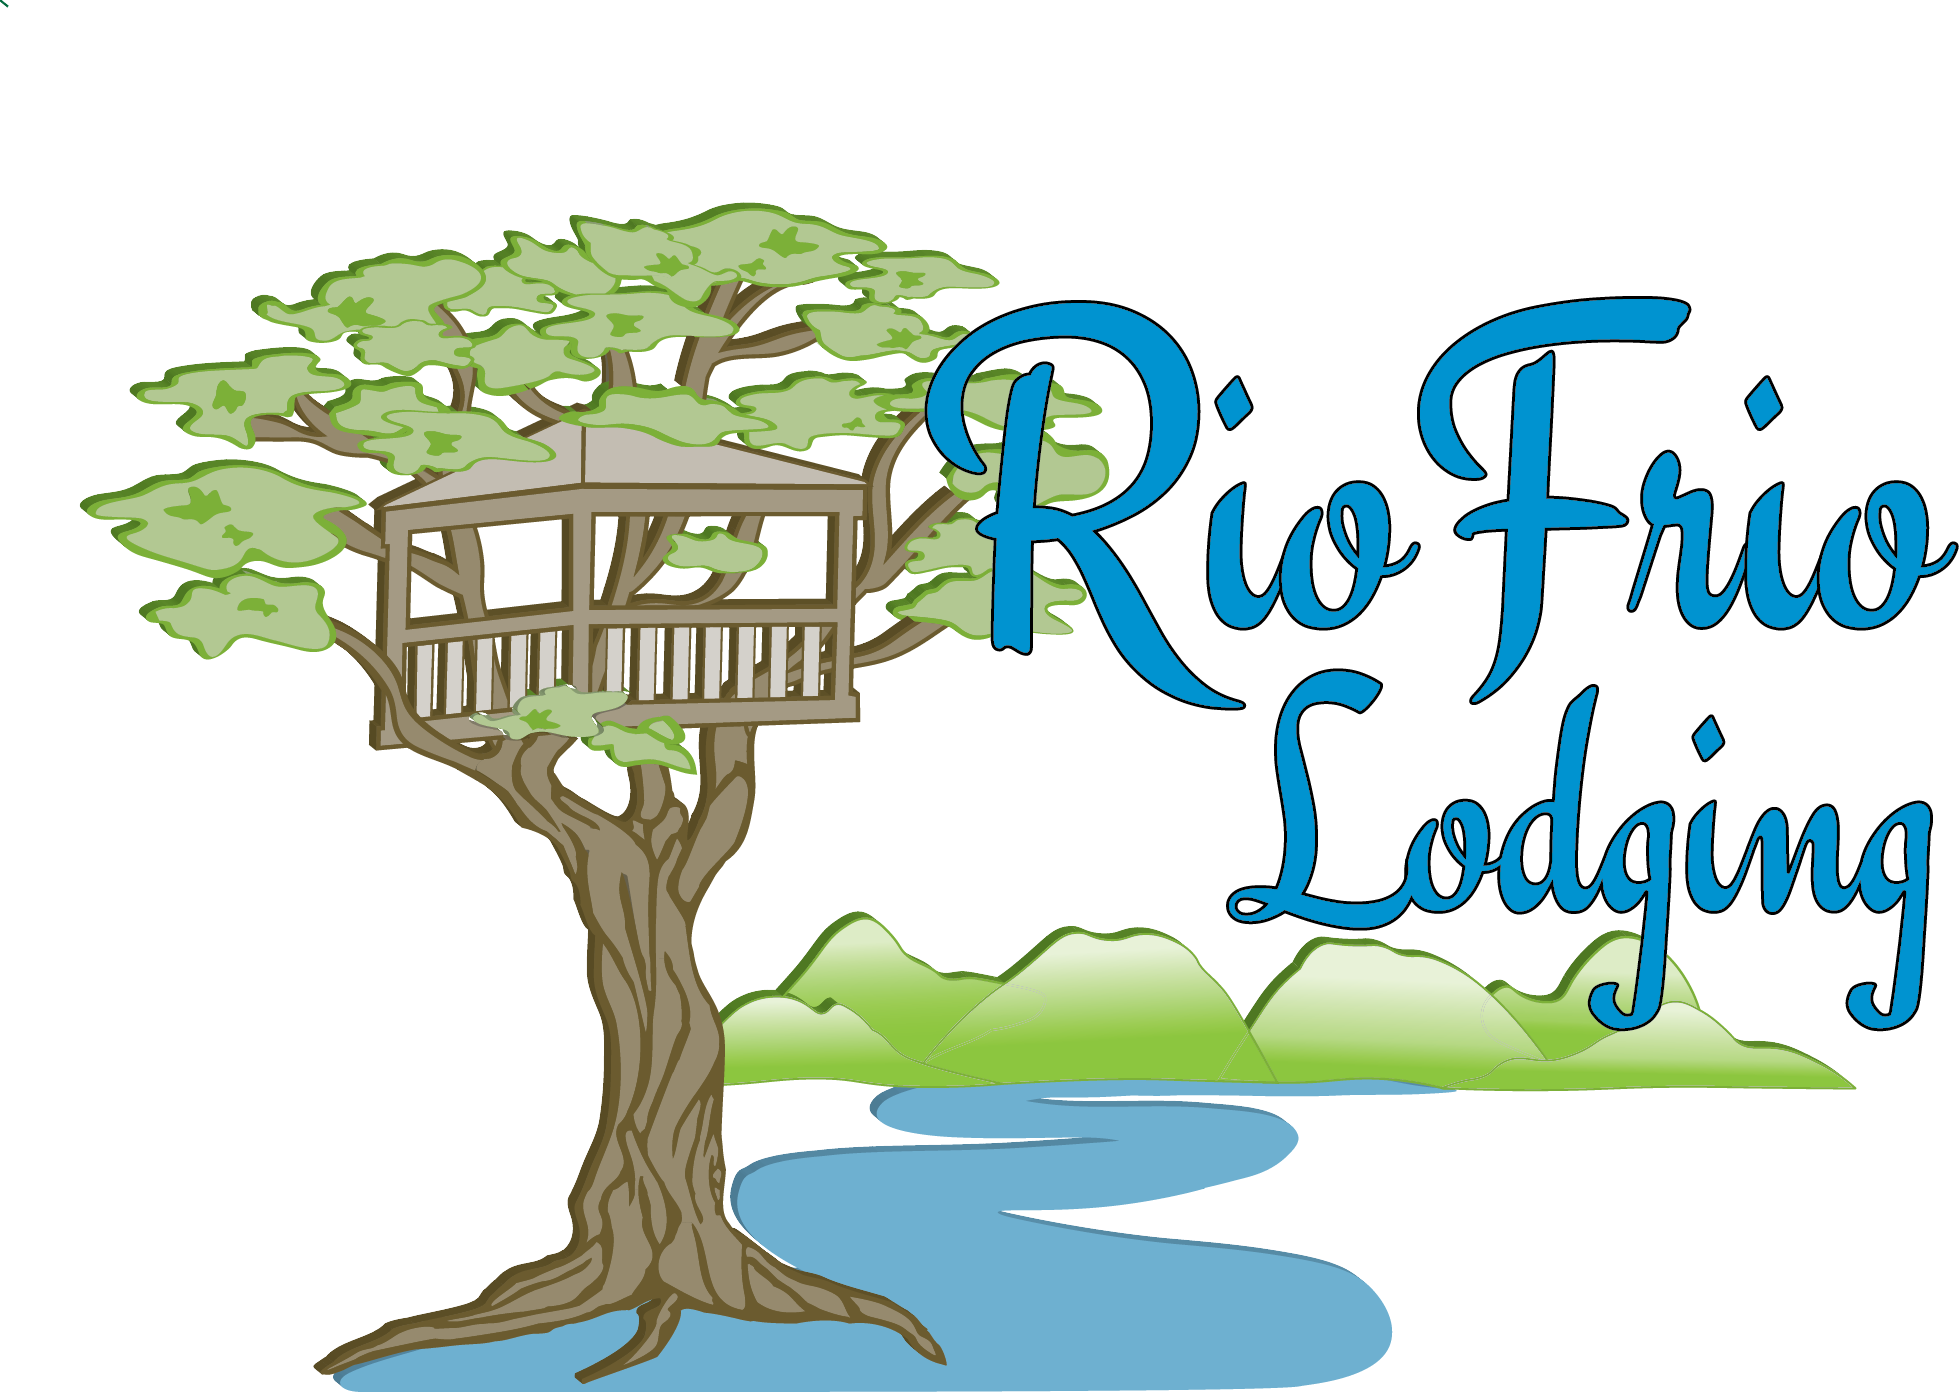 Tree house clipart banner free download Frio River Treetop - Rio Frio Lodging banner free download